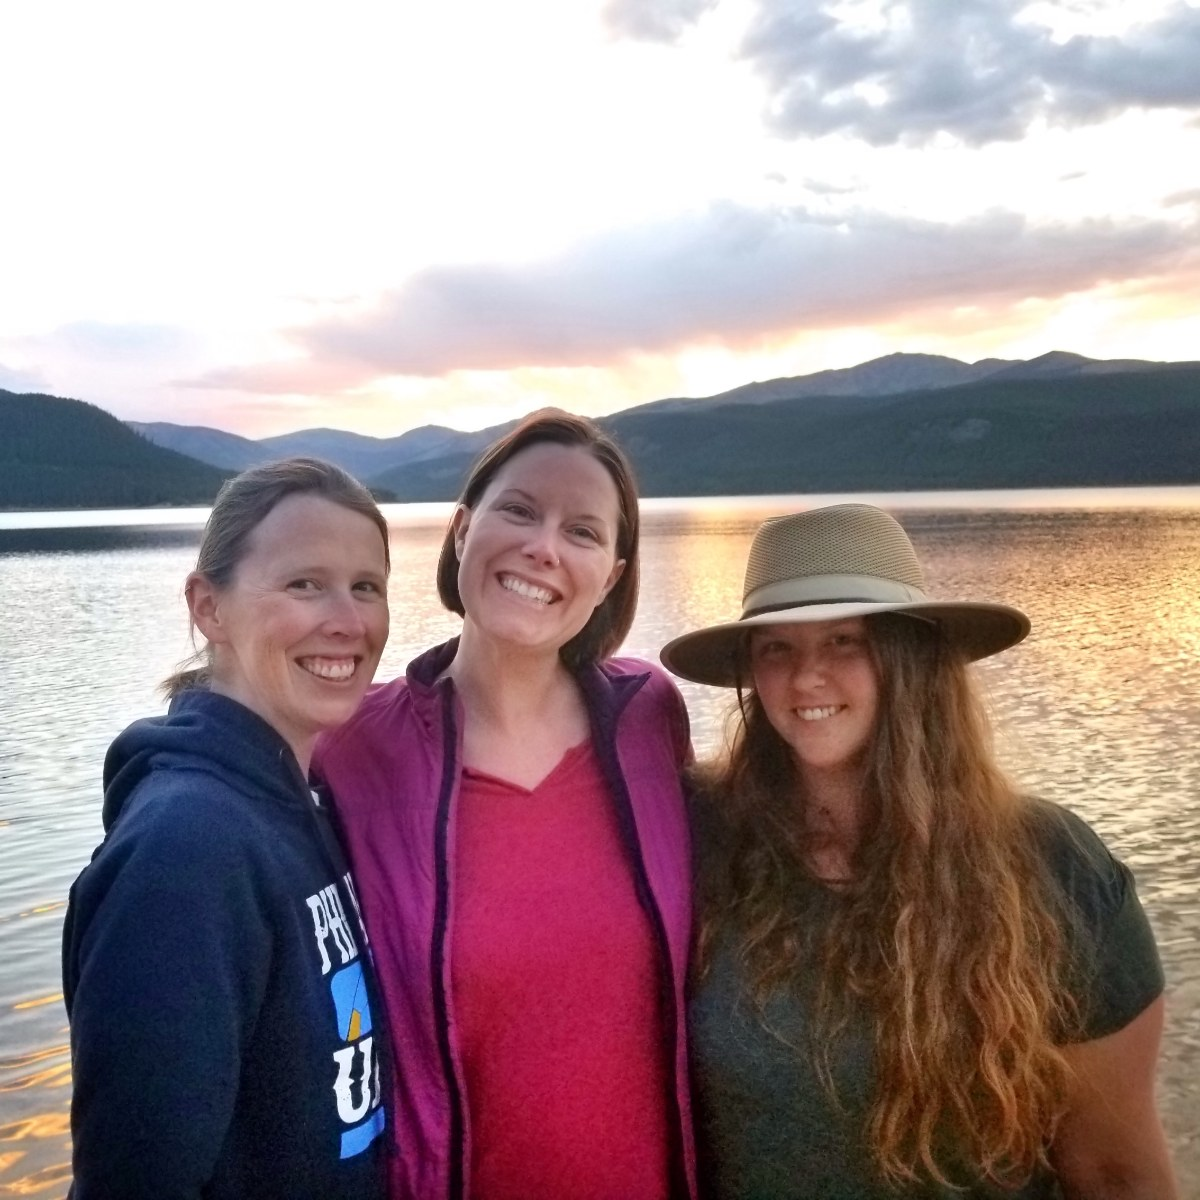 Turquoise Lake - Sunset with Friends